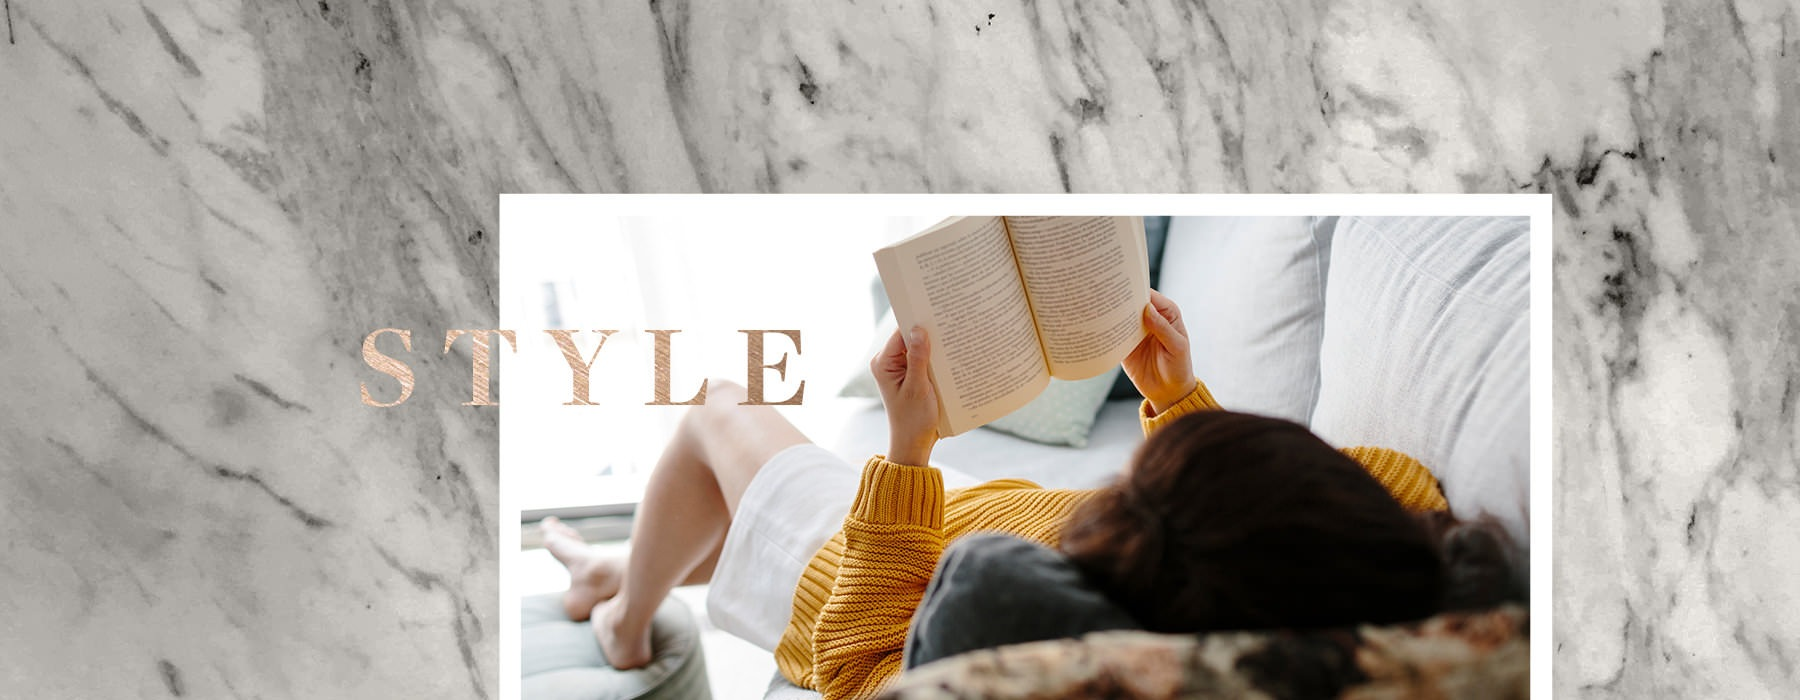 collage of woman laying on couch, reading a book and background image of marble